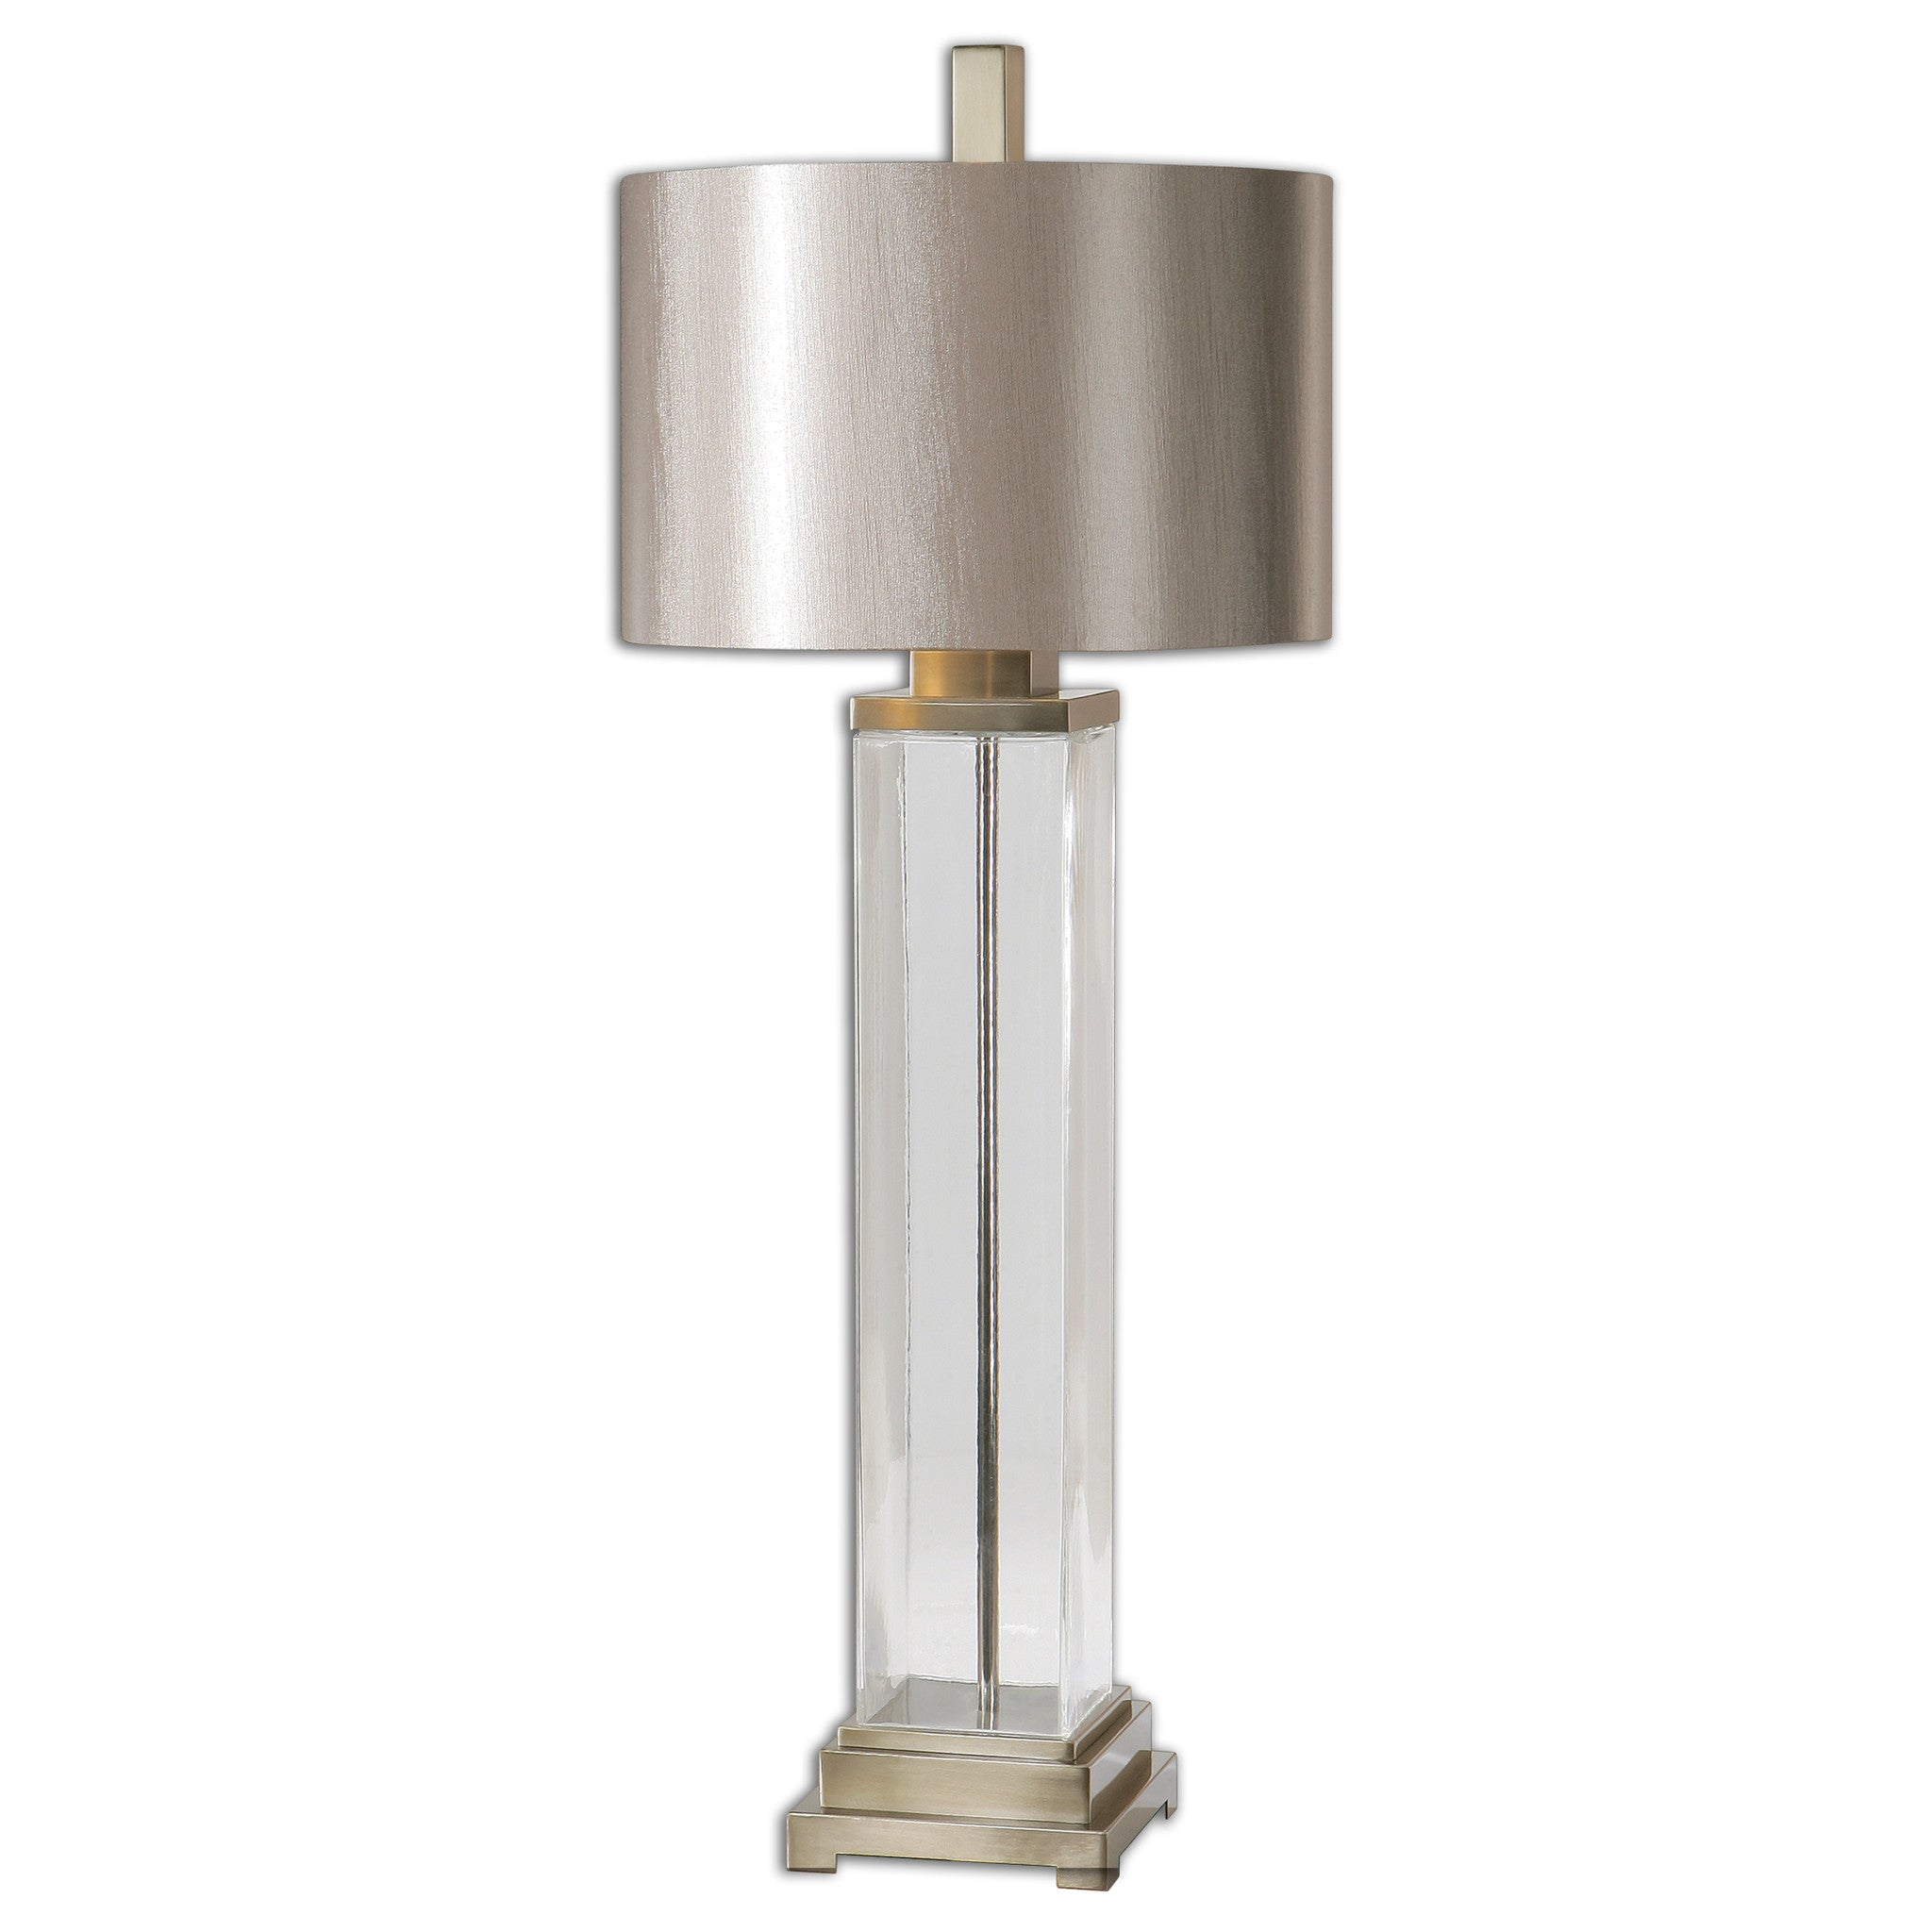 Thick clear glass accented with brushed nickel plated details. The round hardback drum shade is a silken champagne bronze fabric.